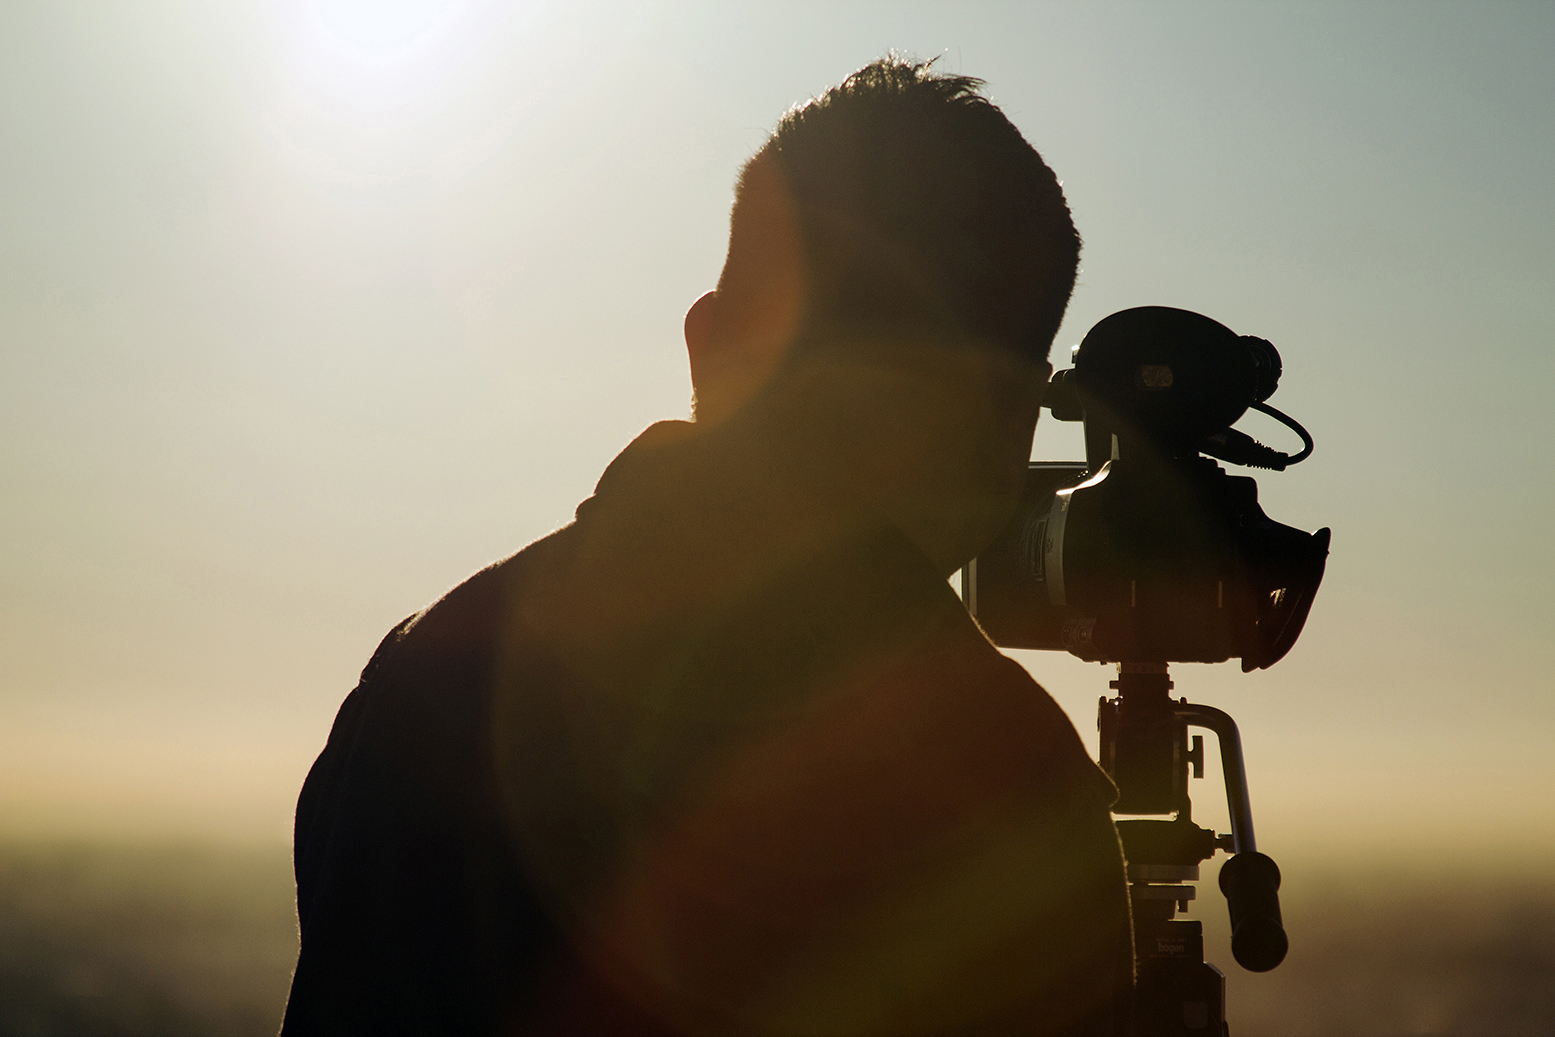 Aspiring Filmmaker shoots a time lapse outdoor in beautiful weather with sun rays around.